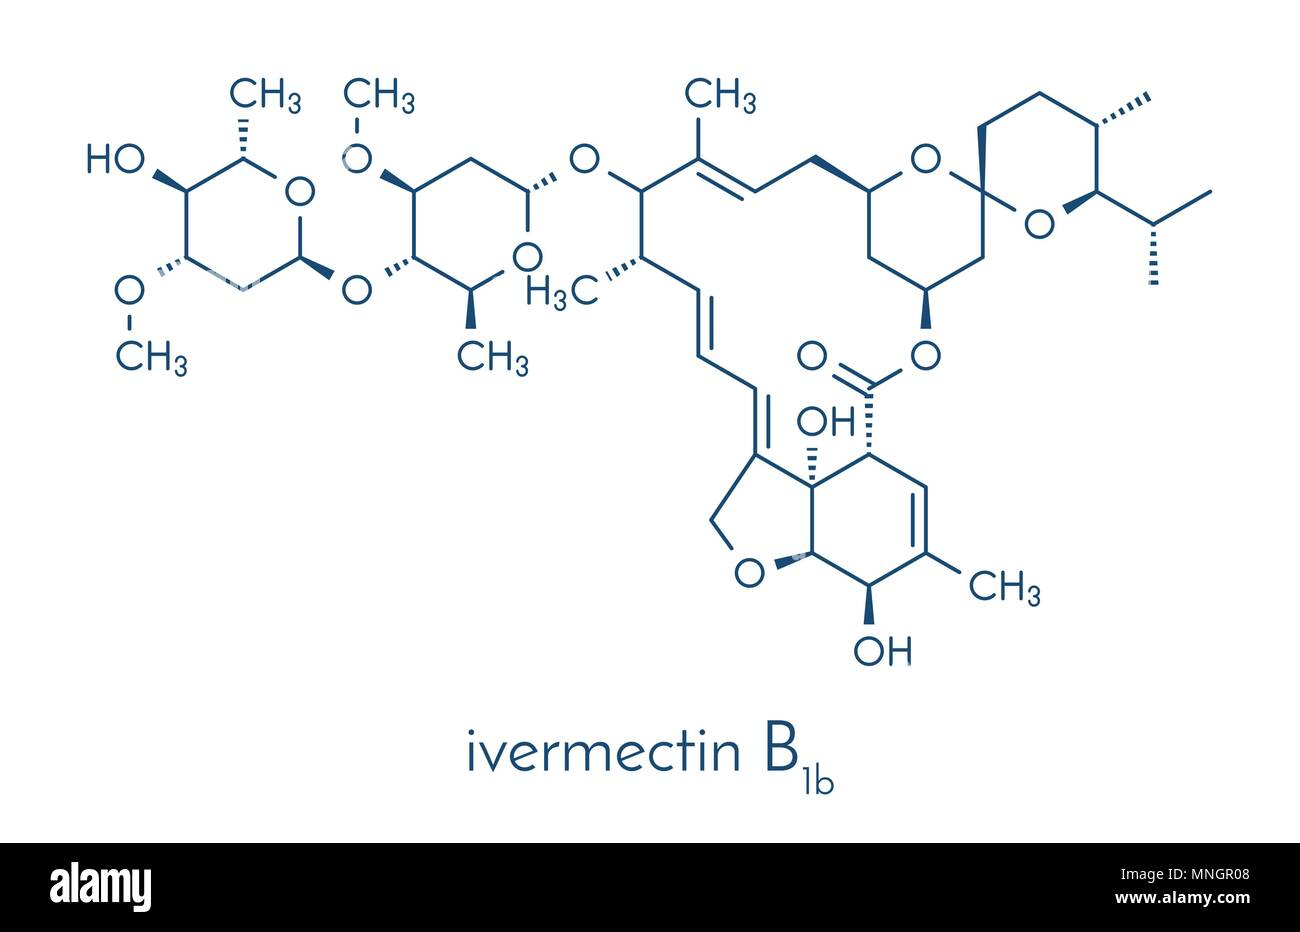 Ivermectin antiparasitic drug molecule. Used in treatment of river blindness, scabies, head lice, etc. Skeletal formula. Stock Vector